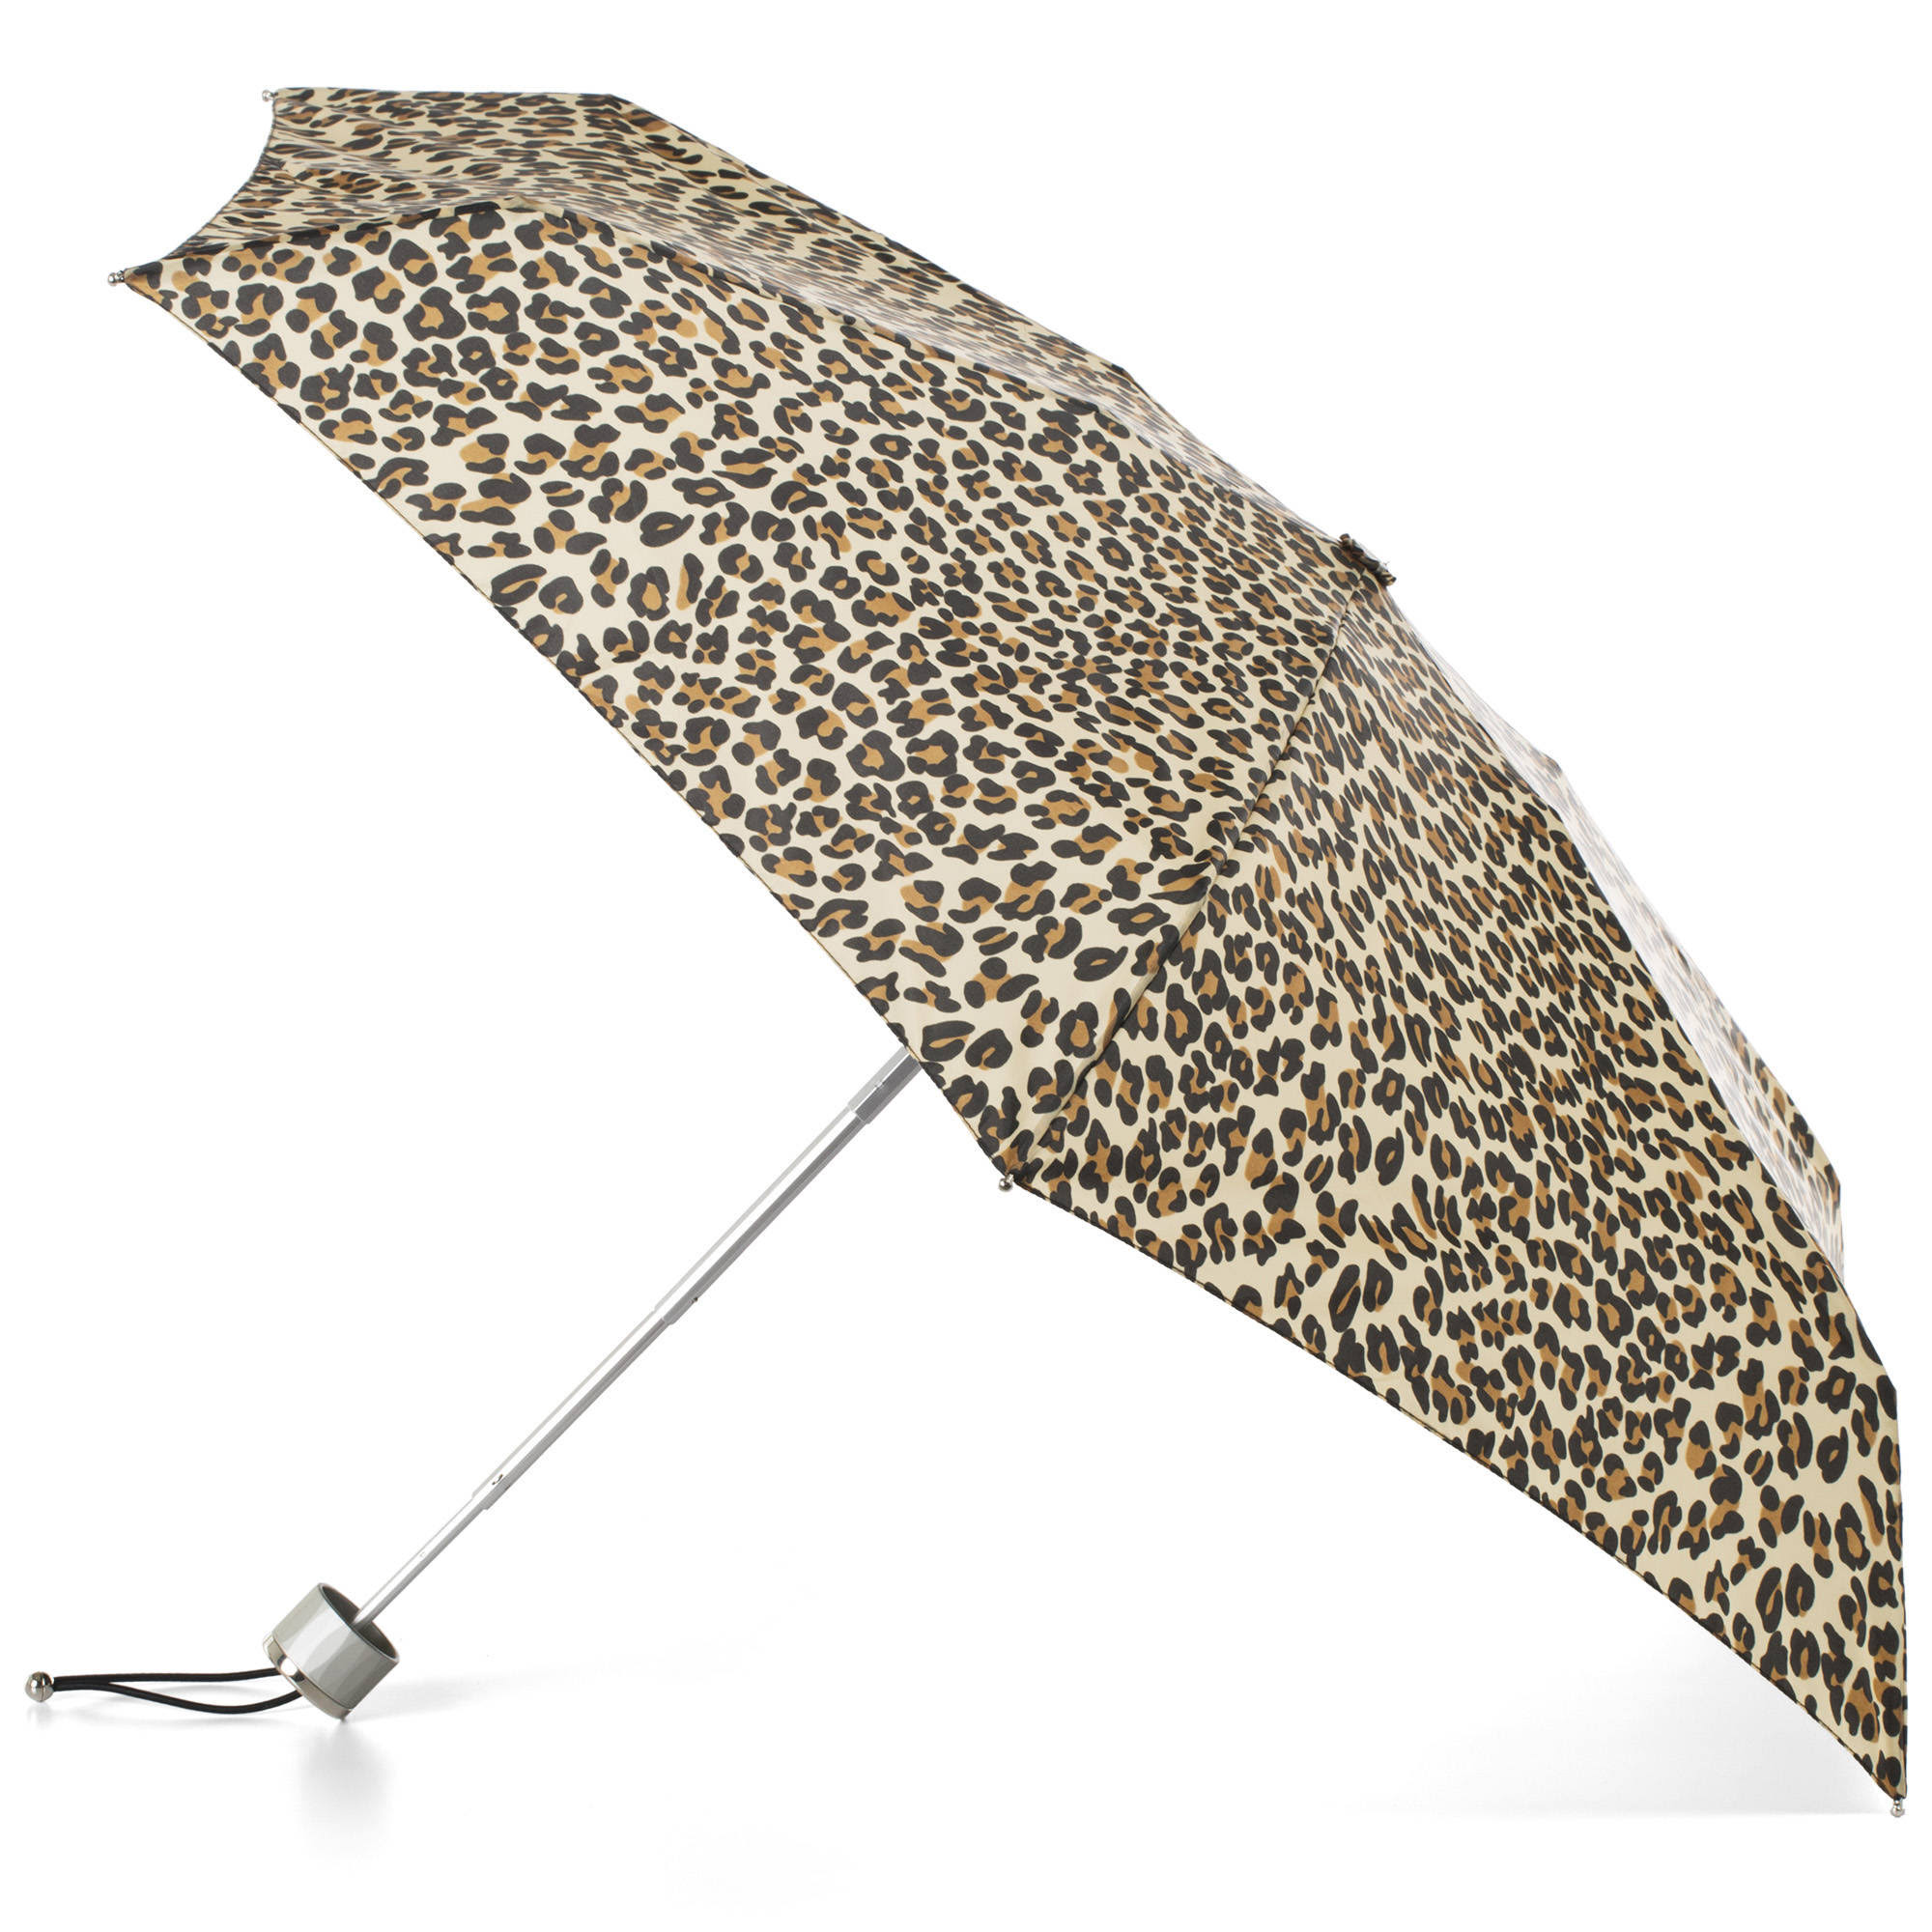 Totes Leopard Spots Mini Umbrella - With NeverWet